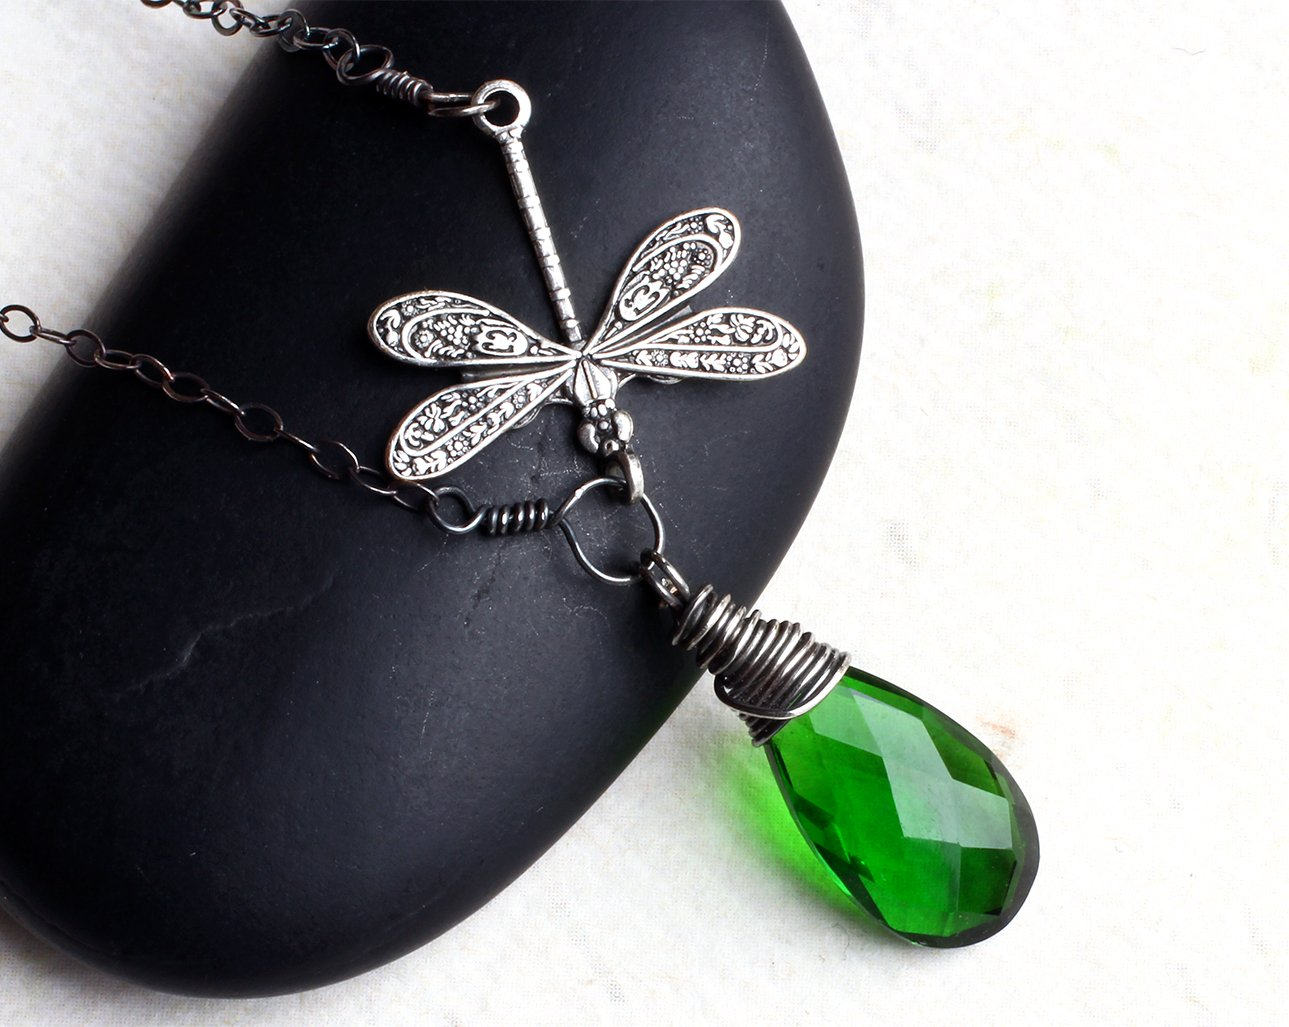 Emerald Green Quartz Necklace, Dragonfly Necklace, Oxidized Sterling Silver -